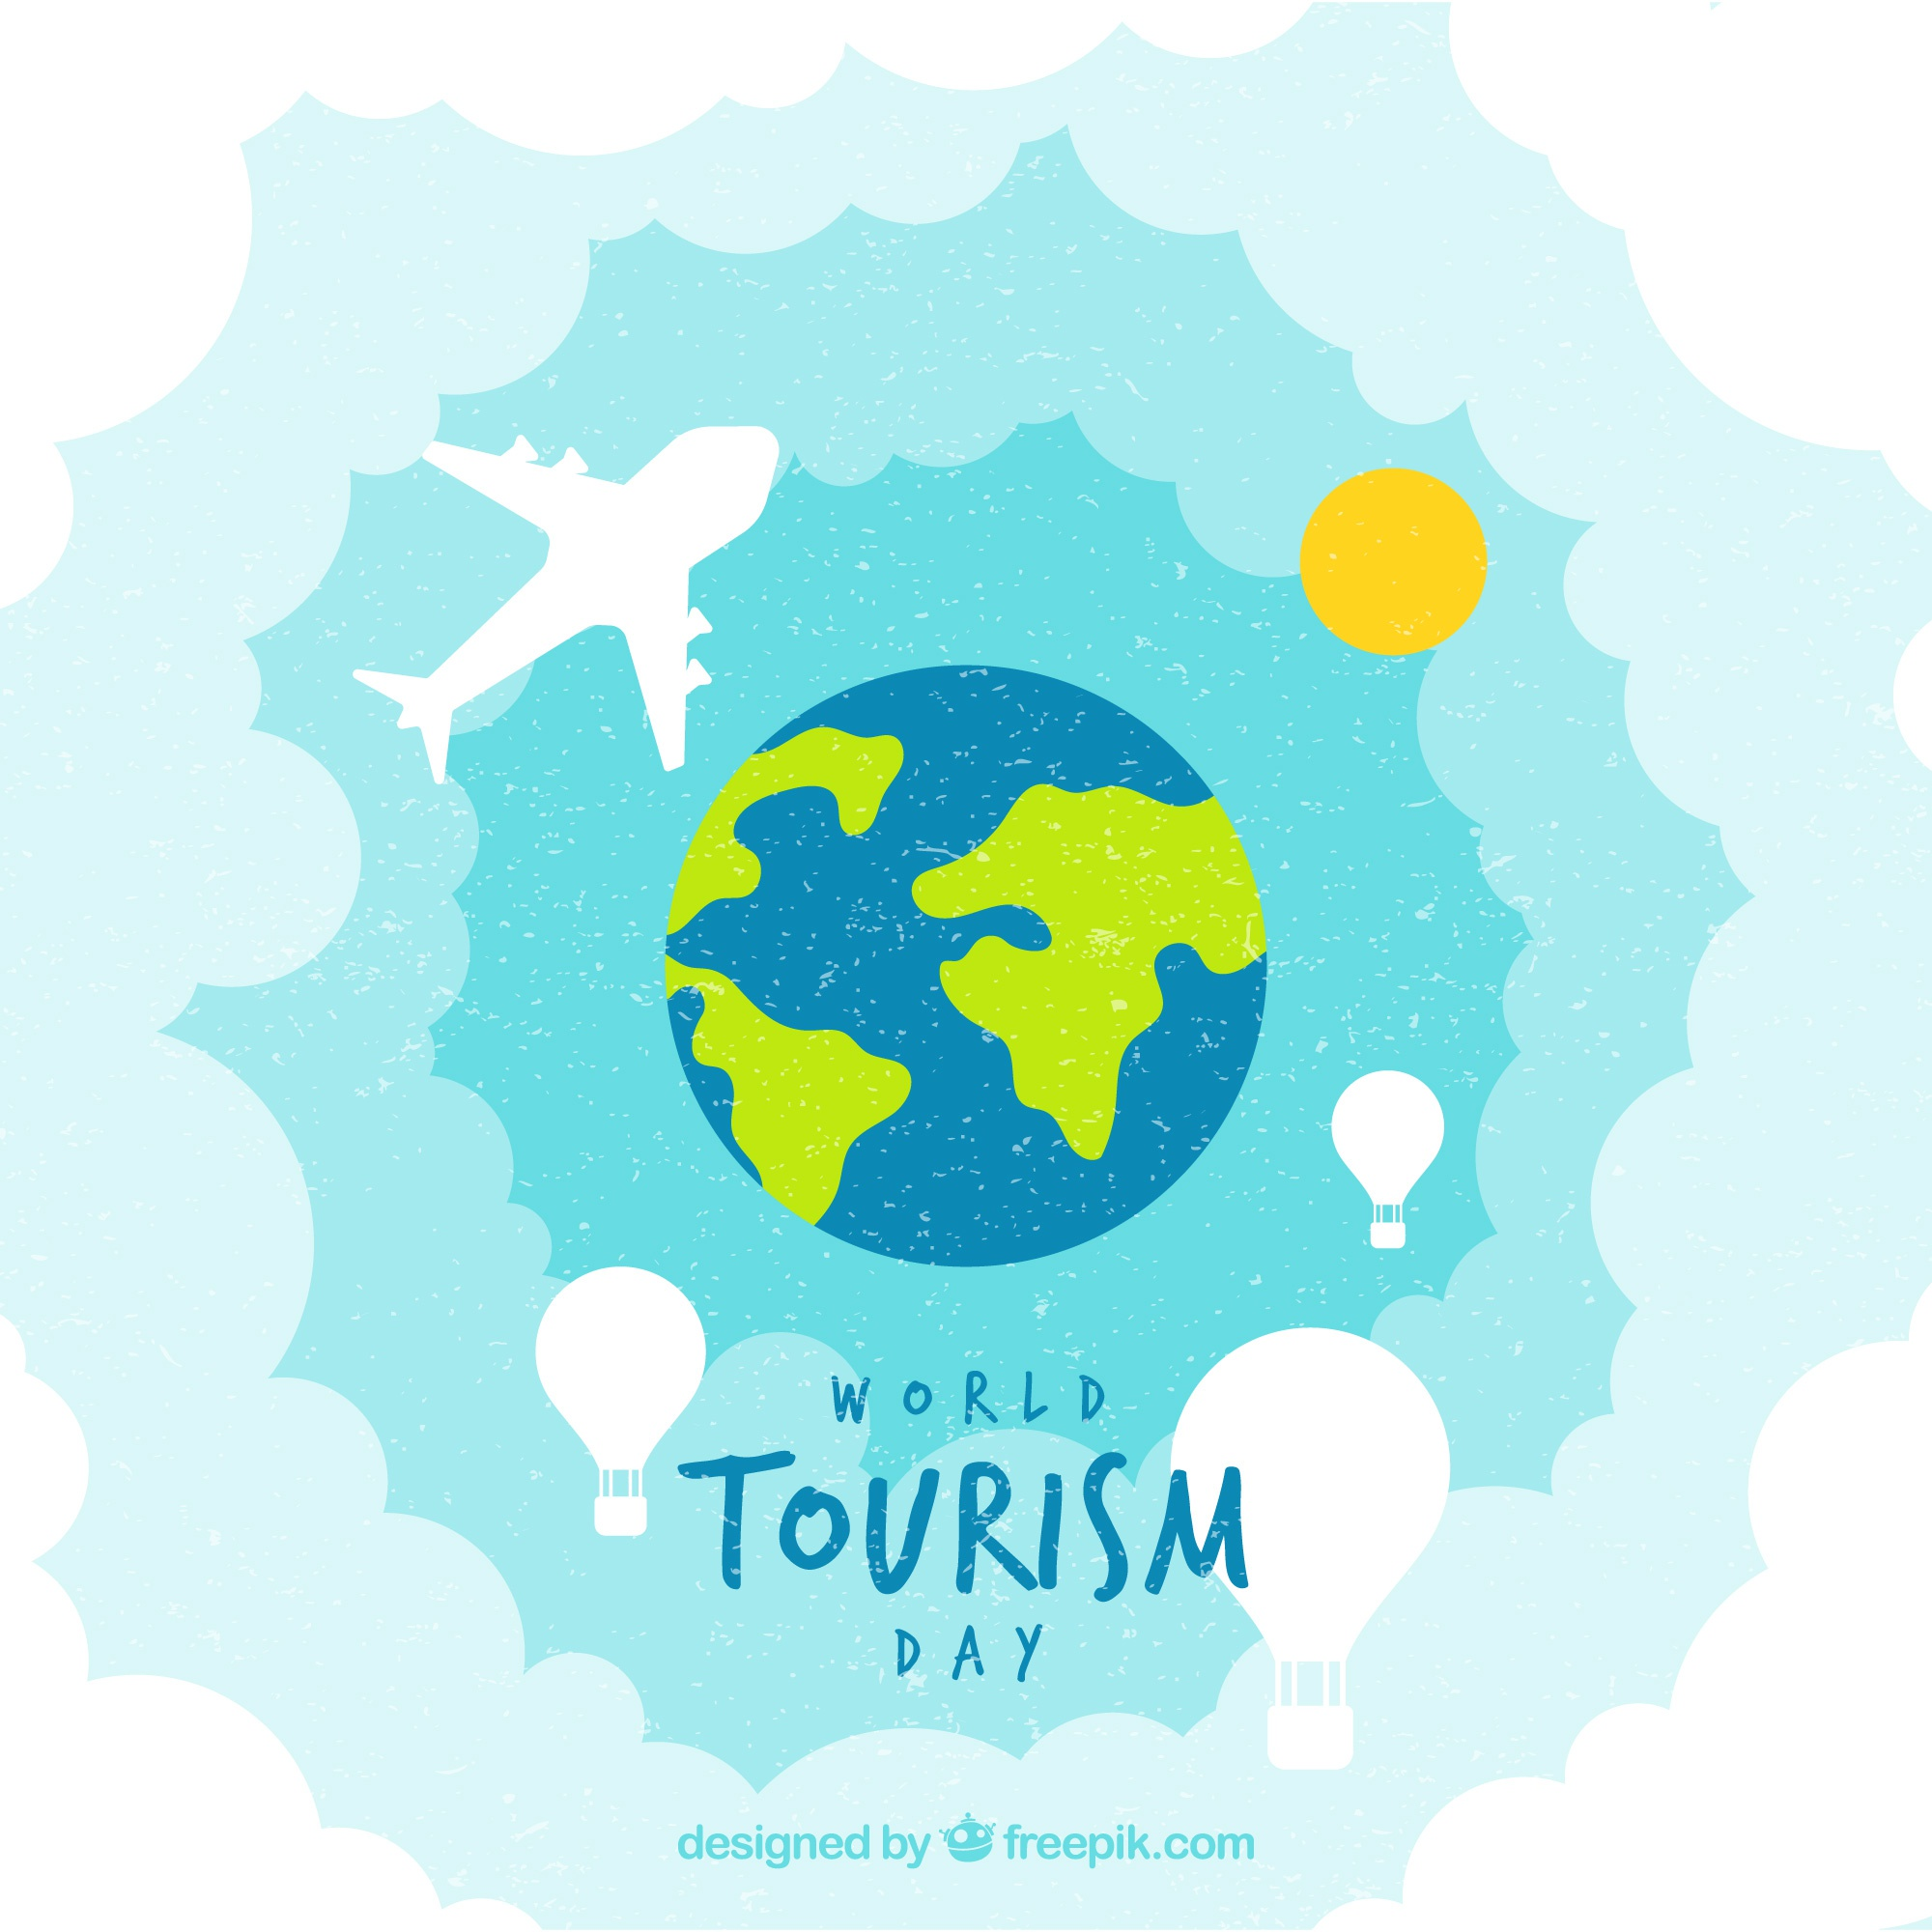 Watercolor world tourism day background